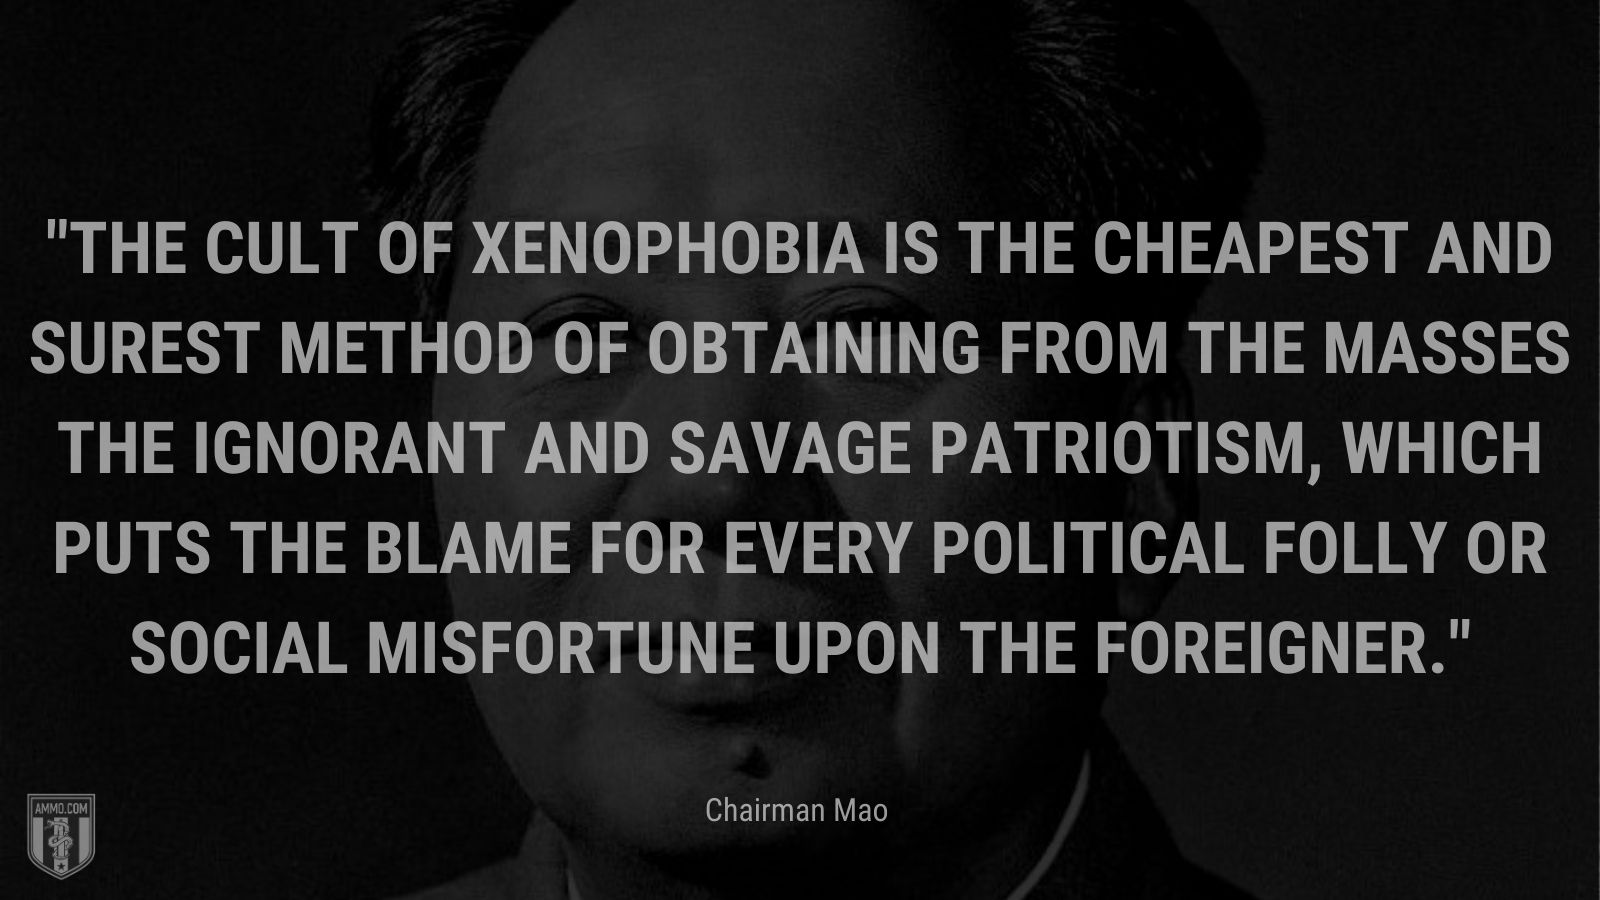 """""""The cult of xenophobia is the cheapest and surest method of obtaining from the masses the ignorant and savage patriotism, which puts the blame for every political folly or social misfortune upon the foreigner."""" - Chairman Mao"""